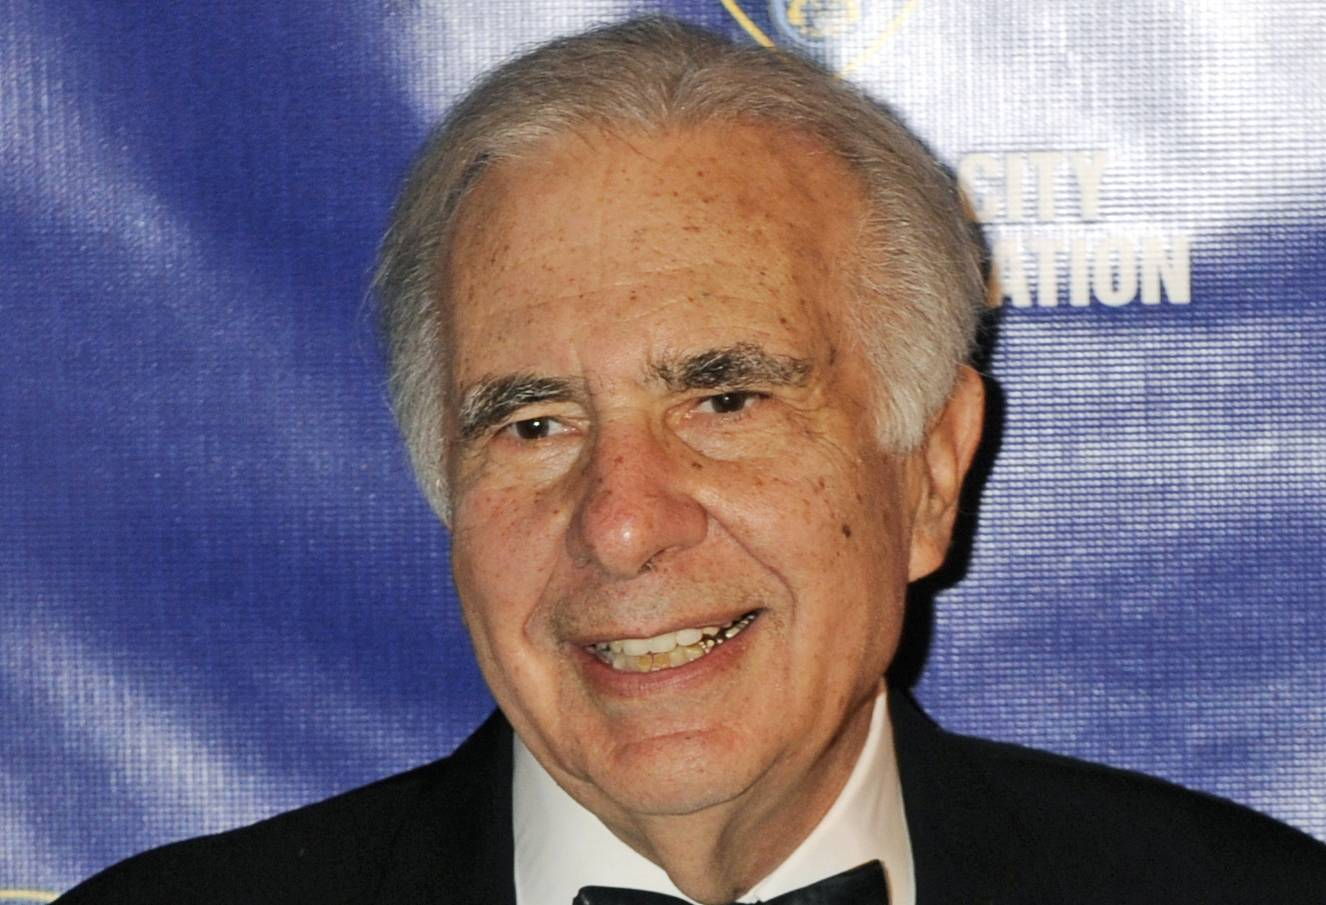 Carl Icahn poses